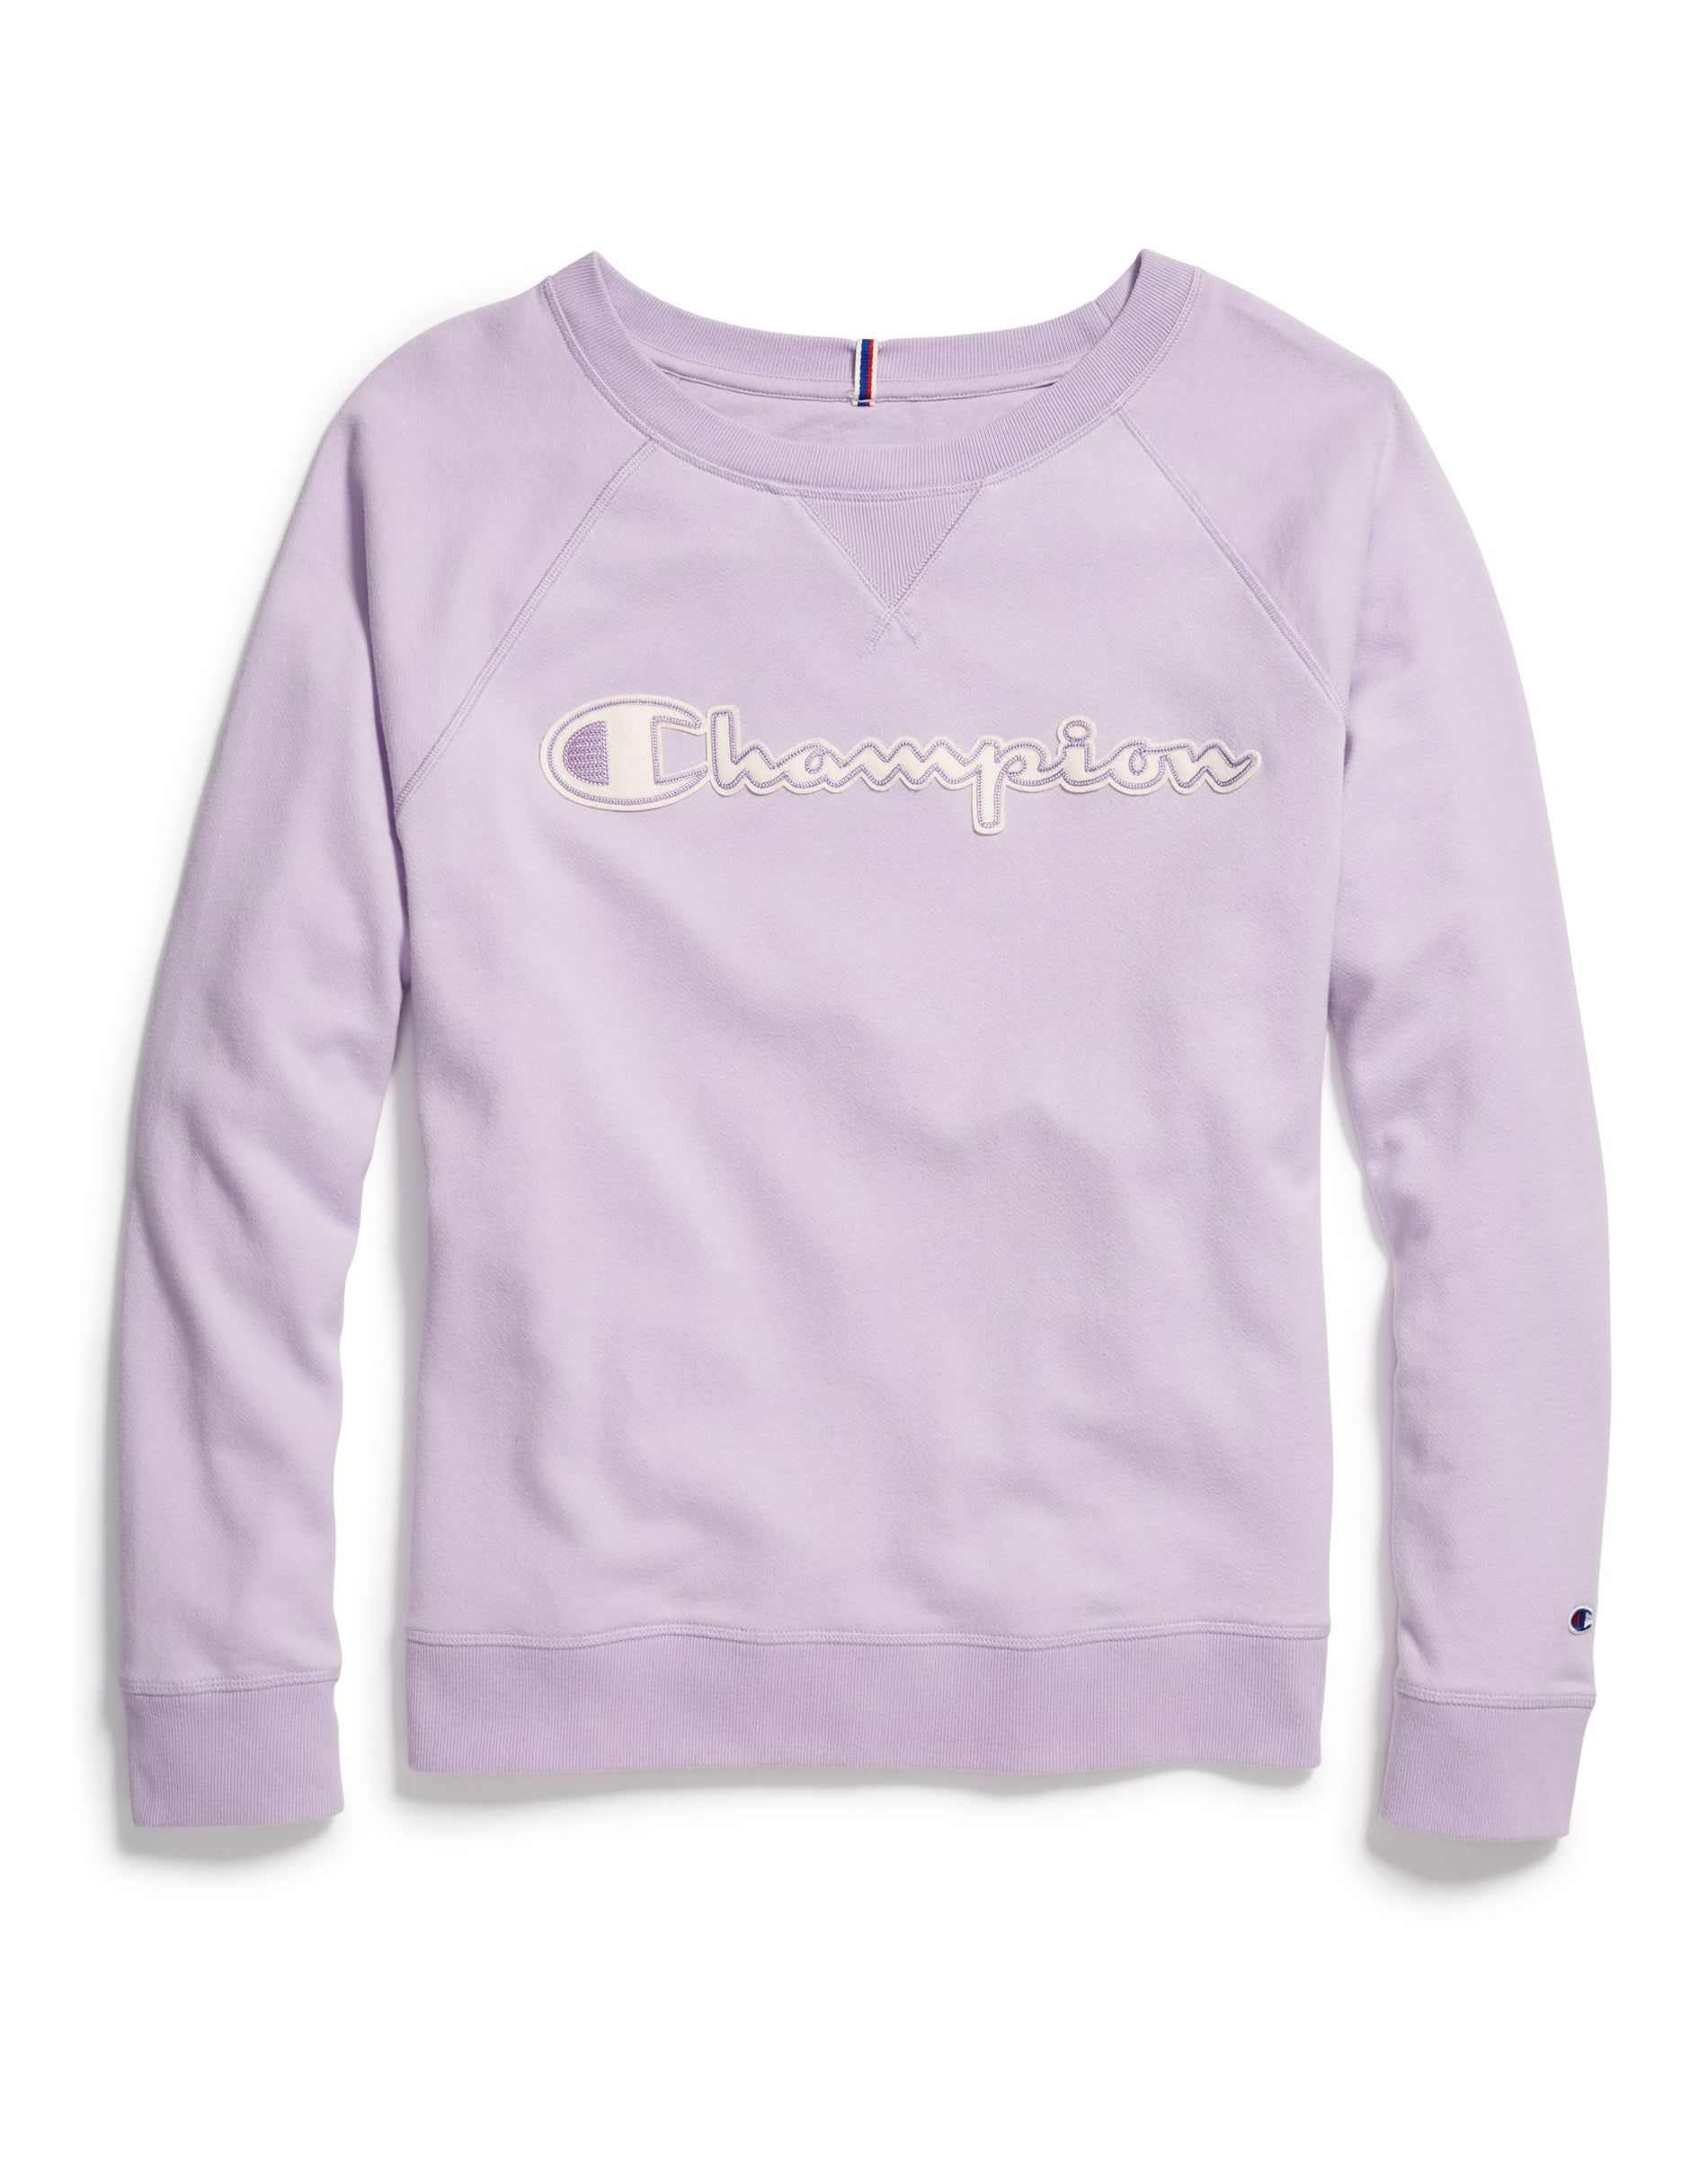 Champion Women S Athletics Heritage French Terry Crew Chainstitch Logo Pale Violet Rose In 2020 Champion Sweatshirt Sweatshirts Women Fashion Logo [ 2410 x 1900 Pixel ]